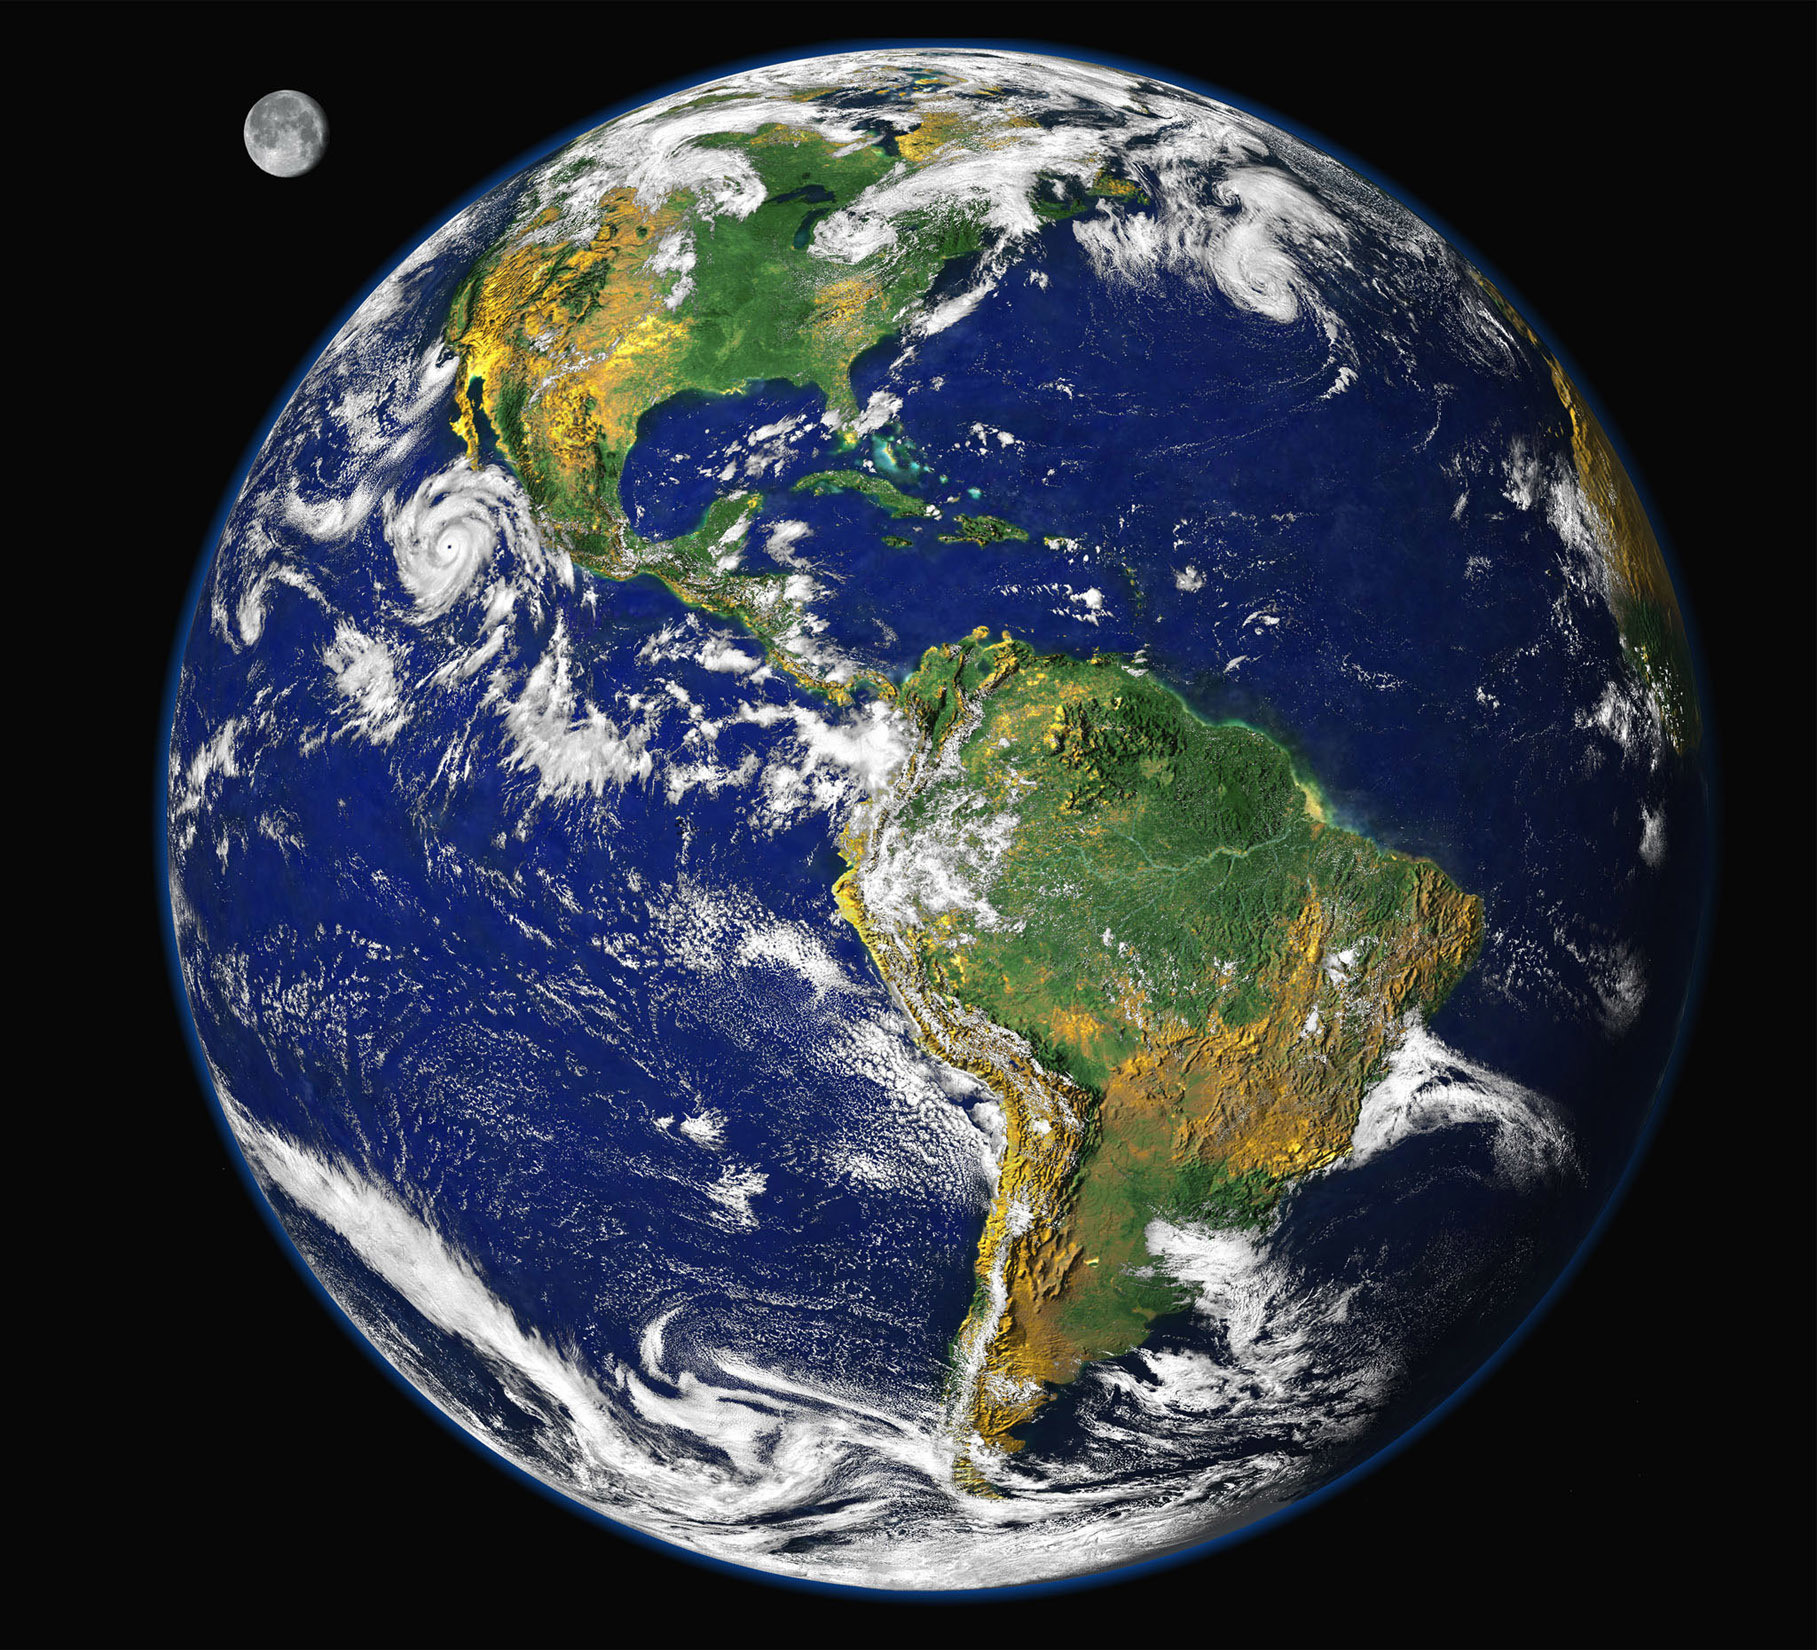 """To mark Earth Day on April 22, 2000, NASA scientists released this new image of the Earth, updating the famous """"Blue Marble"""" photograph taken by Apollo astronauts. The digital image uses data collected in 1997 from several satellites to approximate what a human could see from orbit, with the added artistic license of having the Moon in the background. The prominent storm raging off the west coast of North America is Hurricane Linda. The image of the Moon has been magnified to about twice its relative size.RC/PB - RP2DRHYHGPAB"""